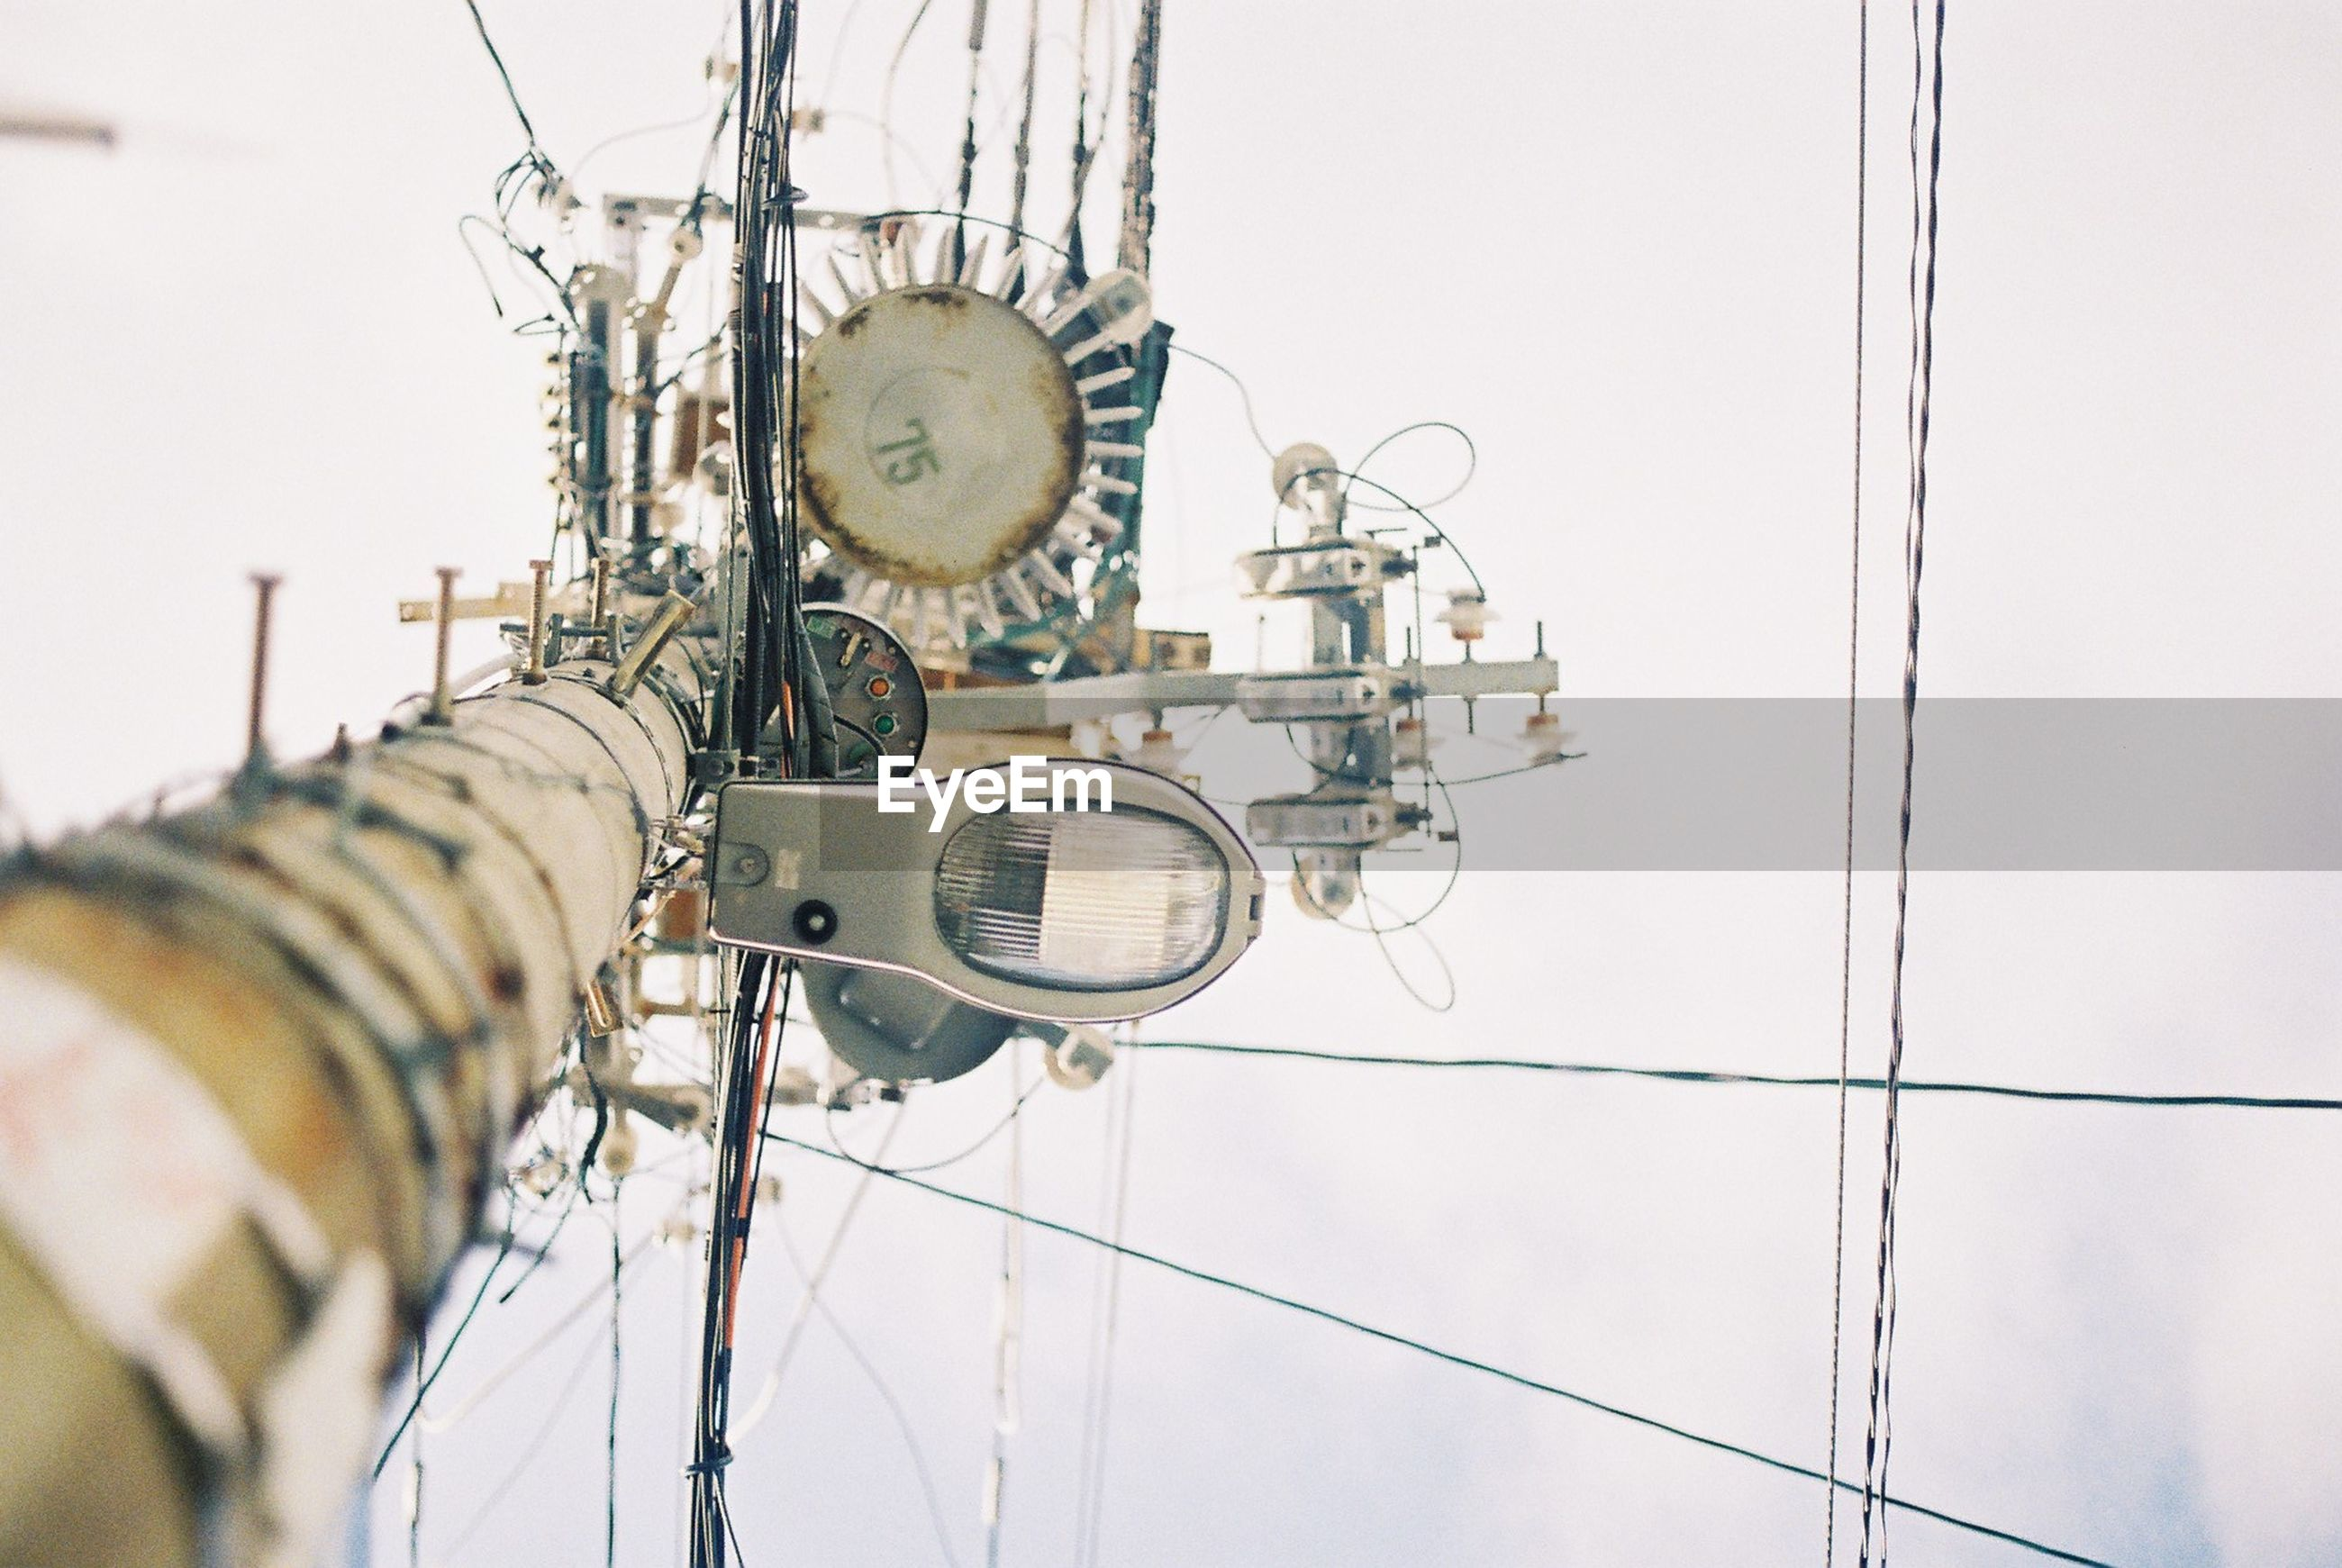 Directly below view of street light with complex electricity cables against sky